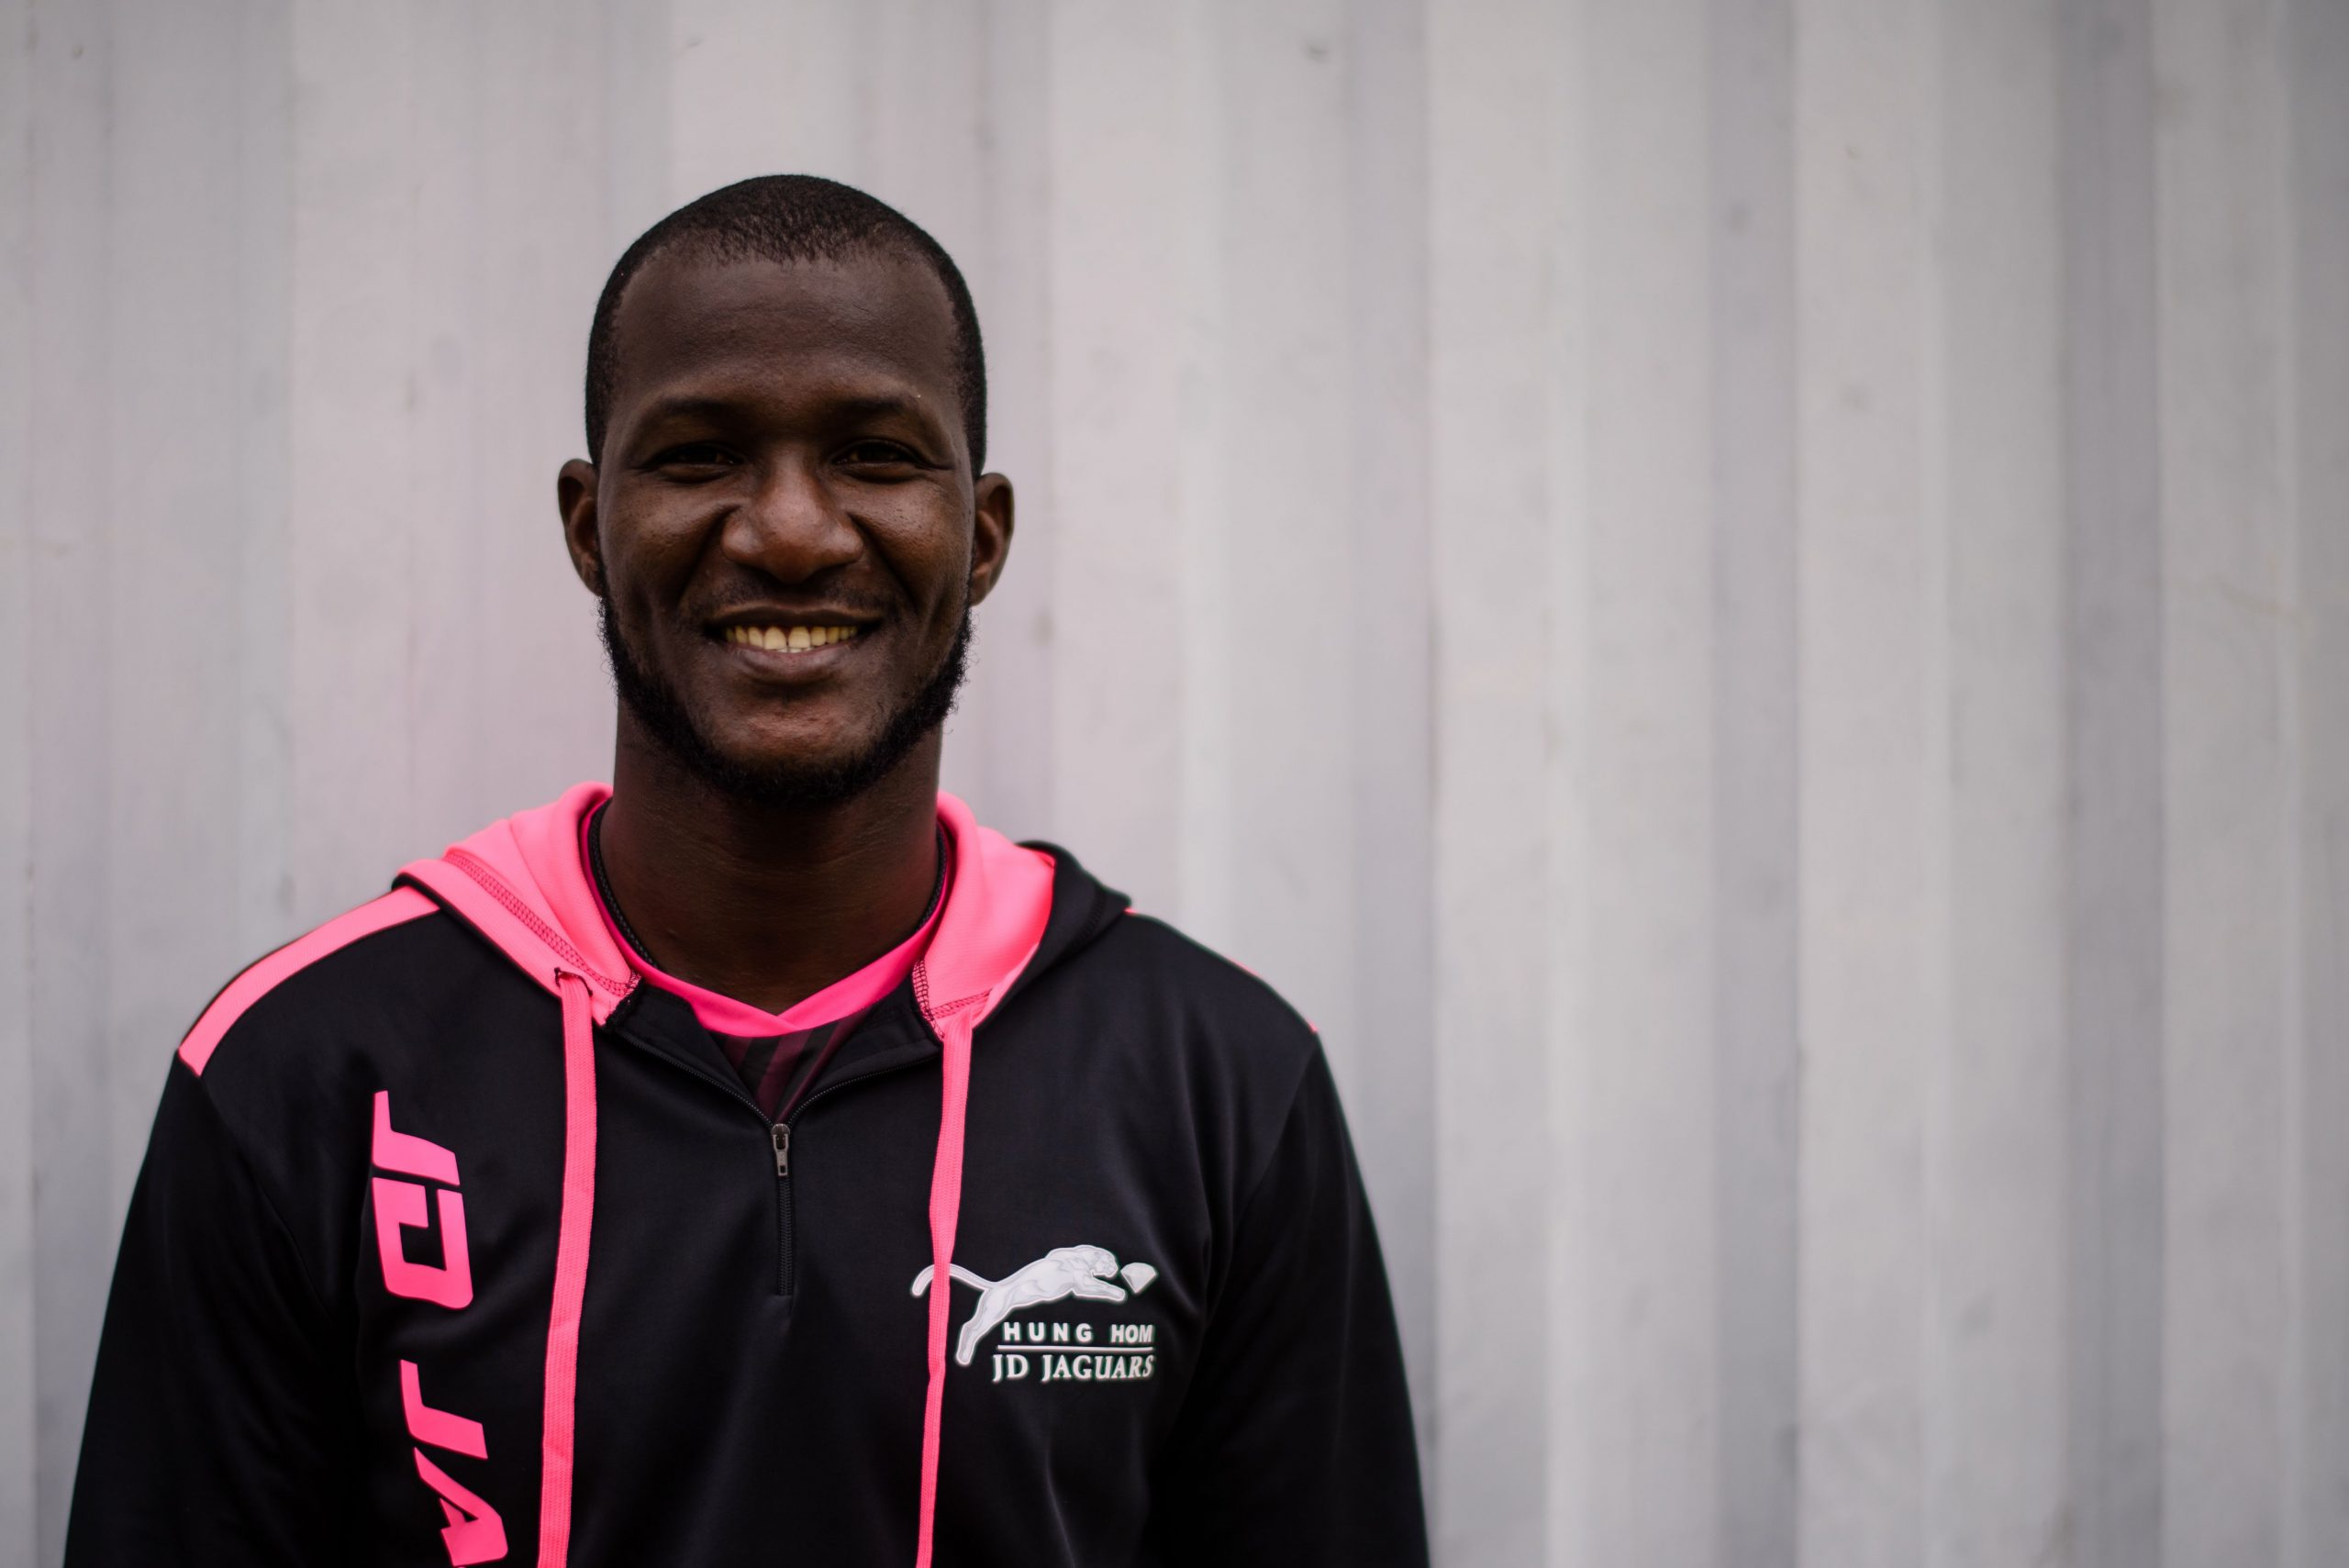 West Indies cricketer Darren Sammy (Photo ANTHONY WALLACE/AFP via Getty Images)